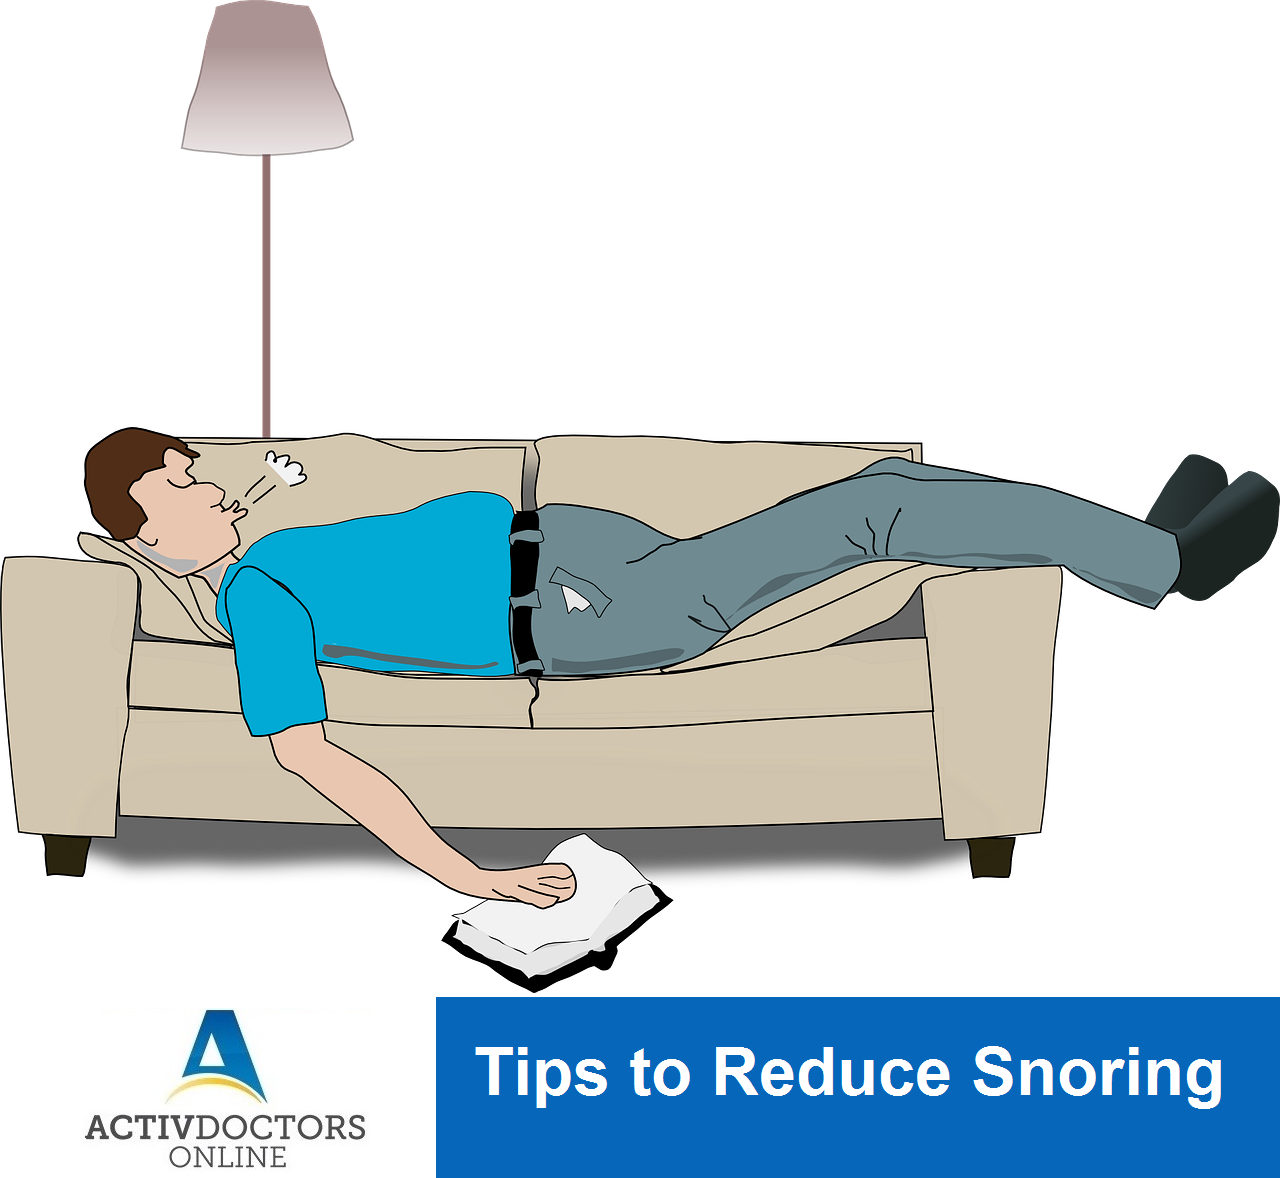 Tips to Reduce Snoring